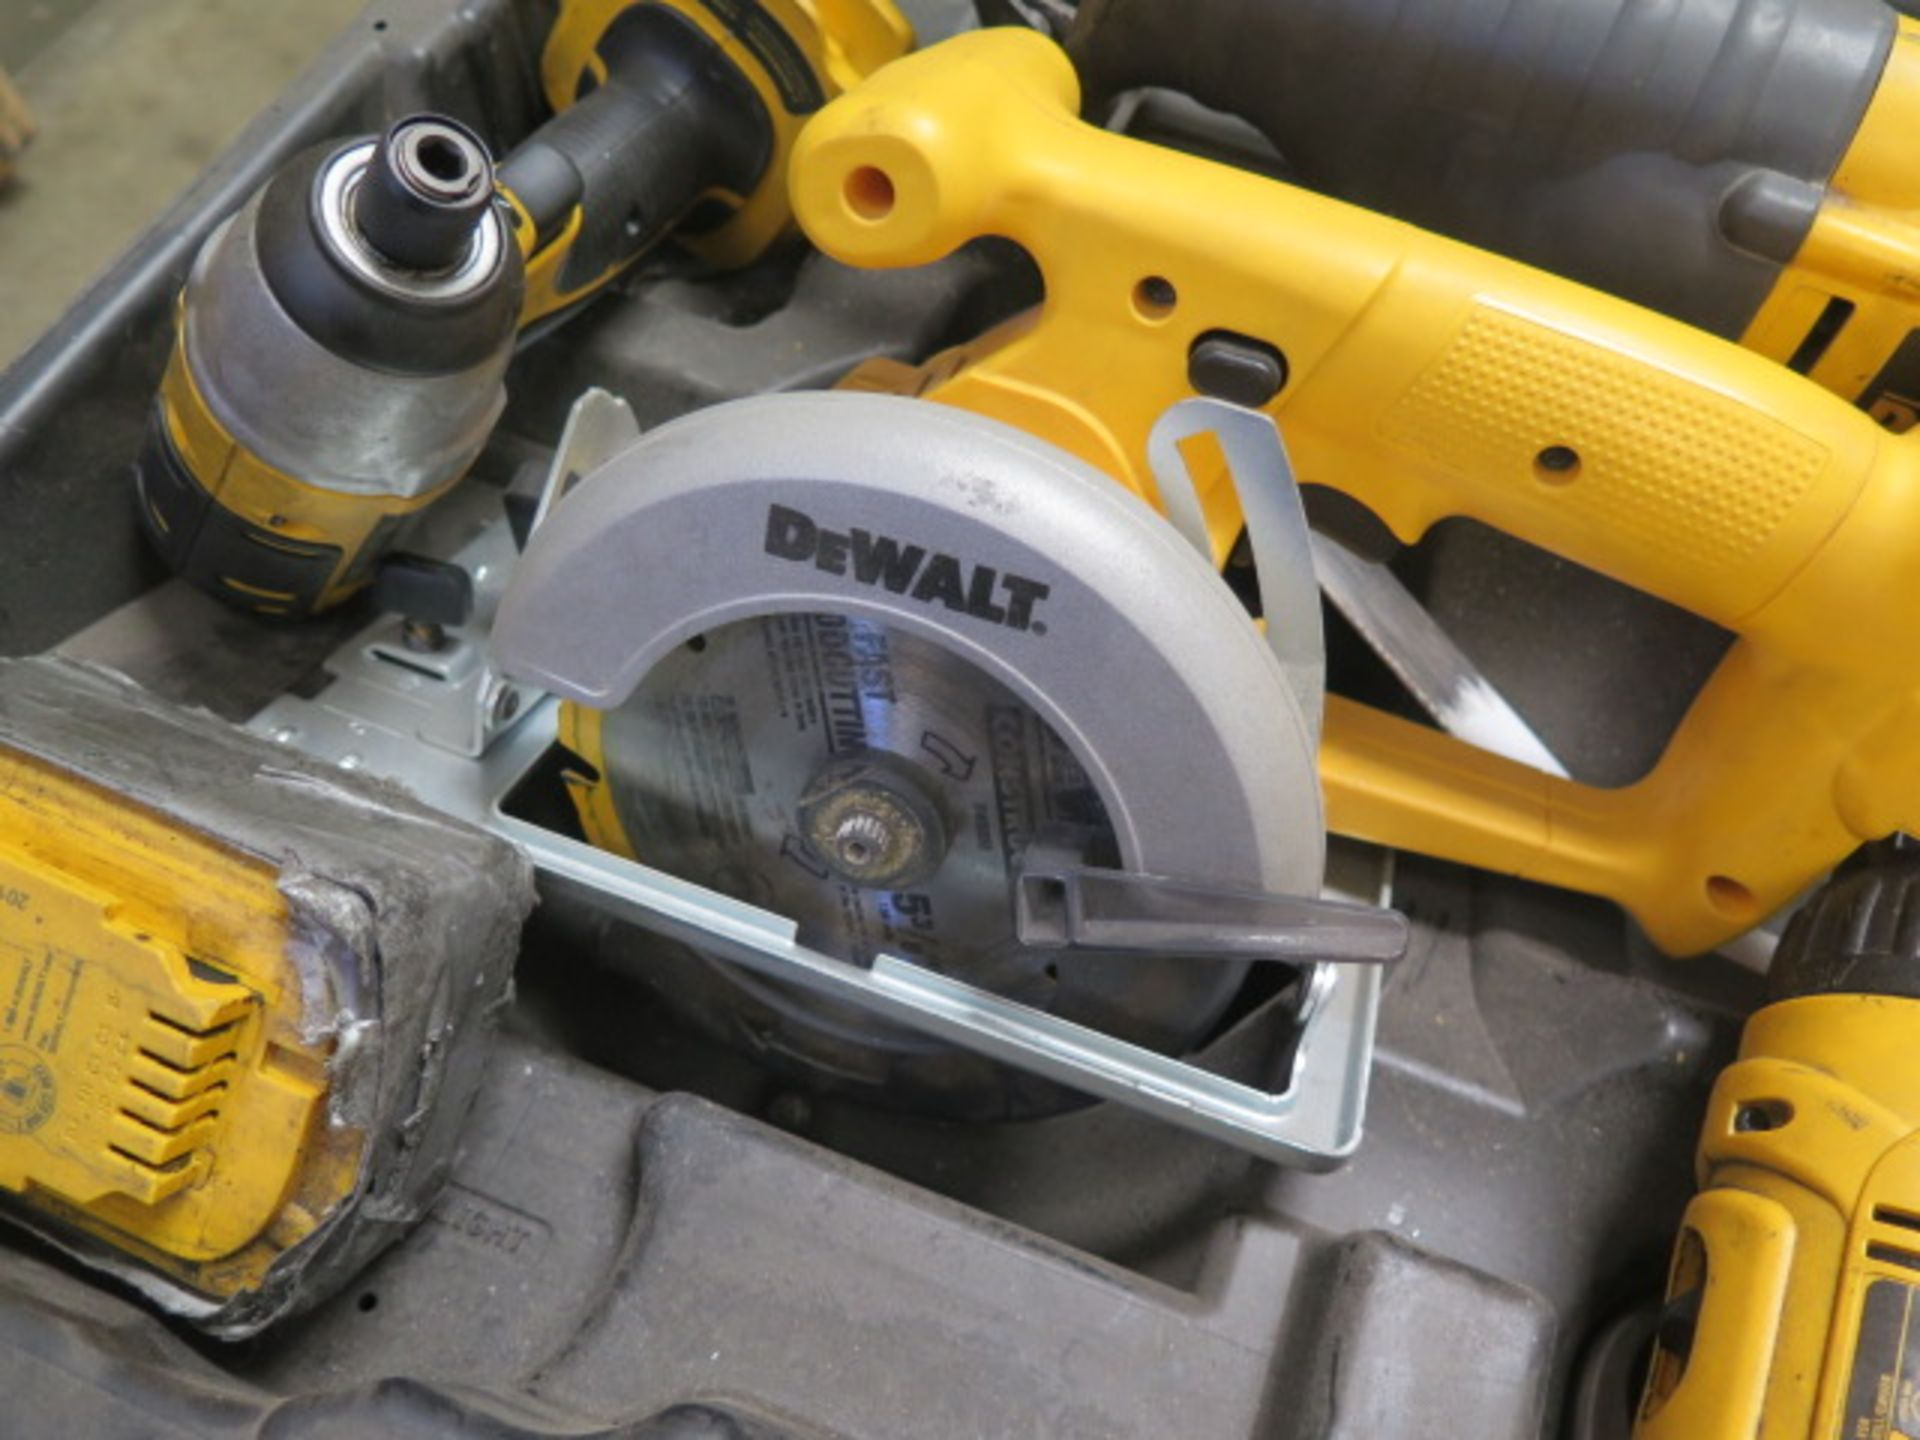 DeWalt Cordless Tools w/ Charger (SOLD AS-IS - NO WARRANTY) - Image 6 of 9